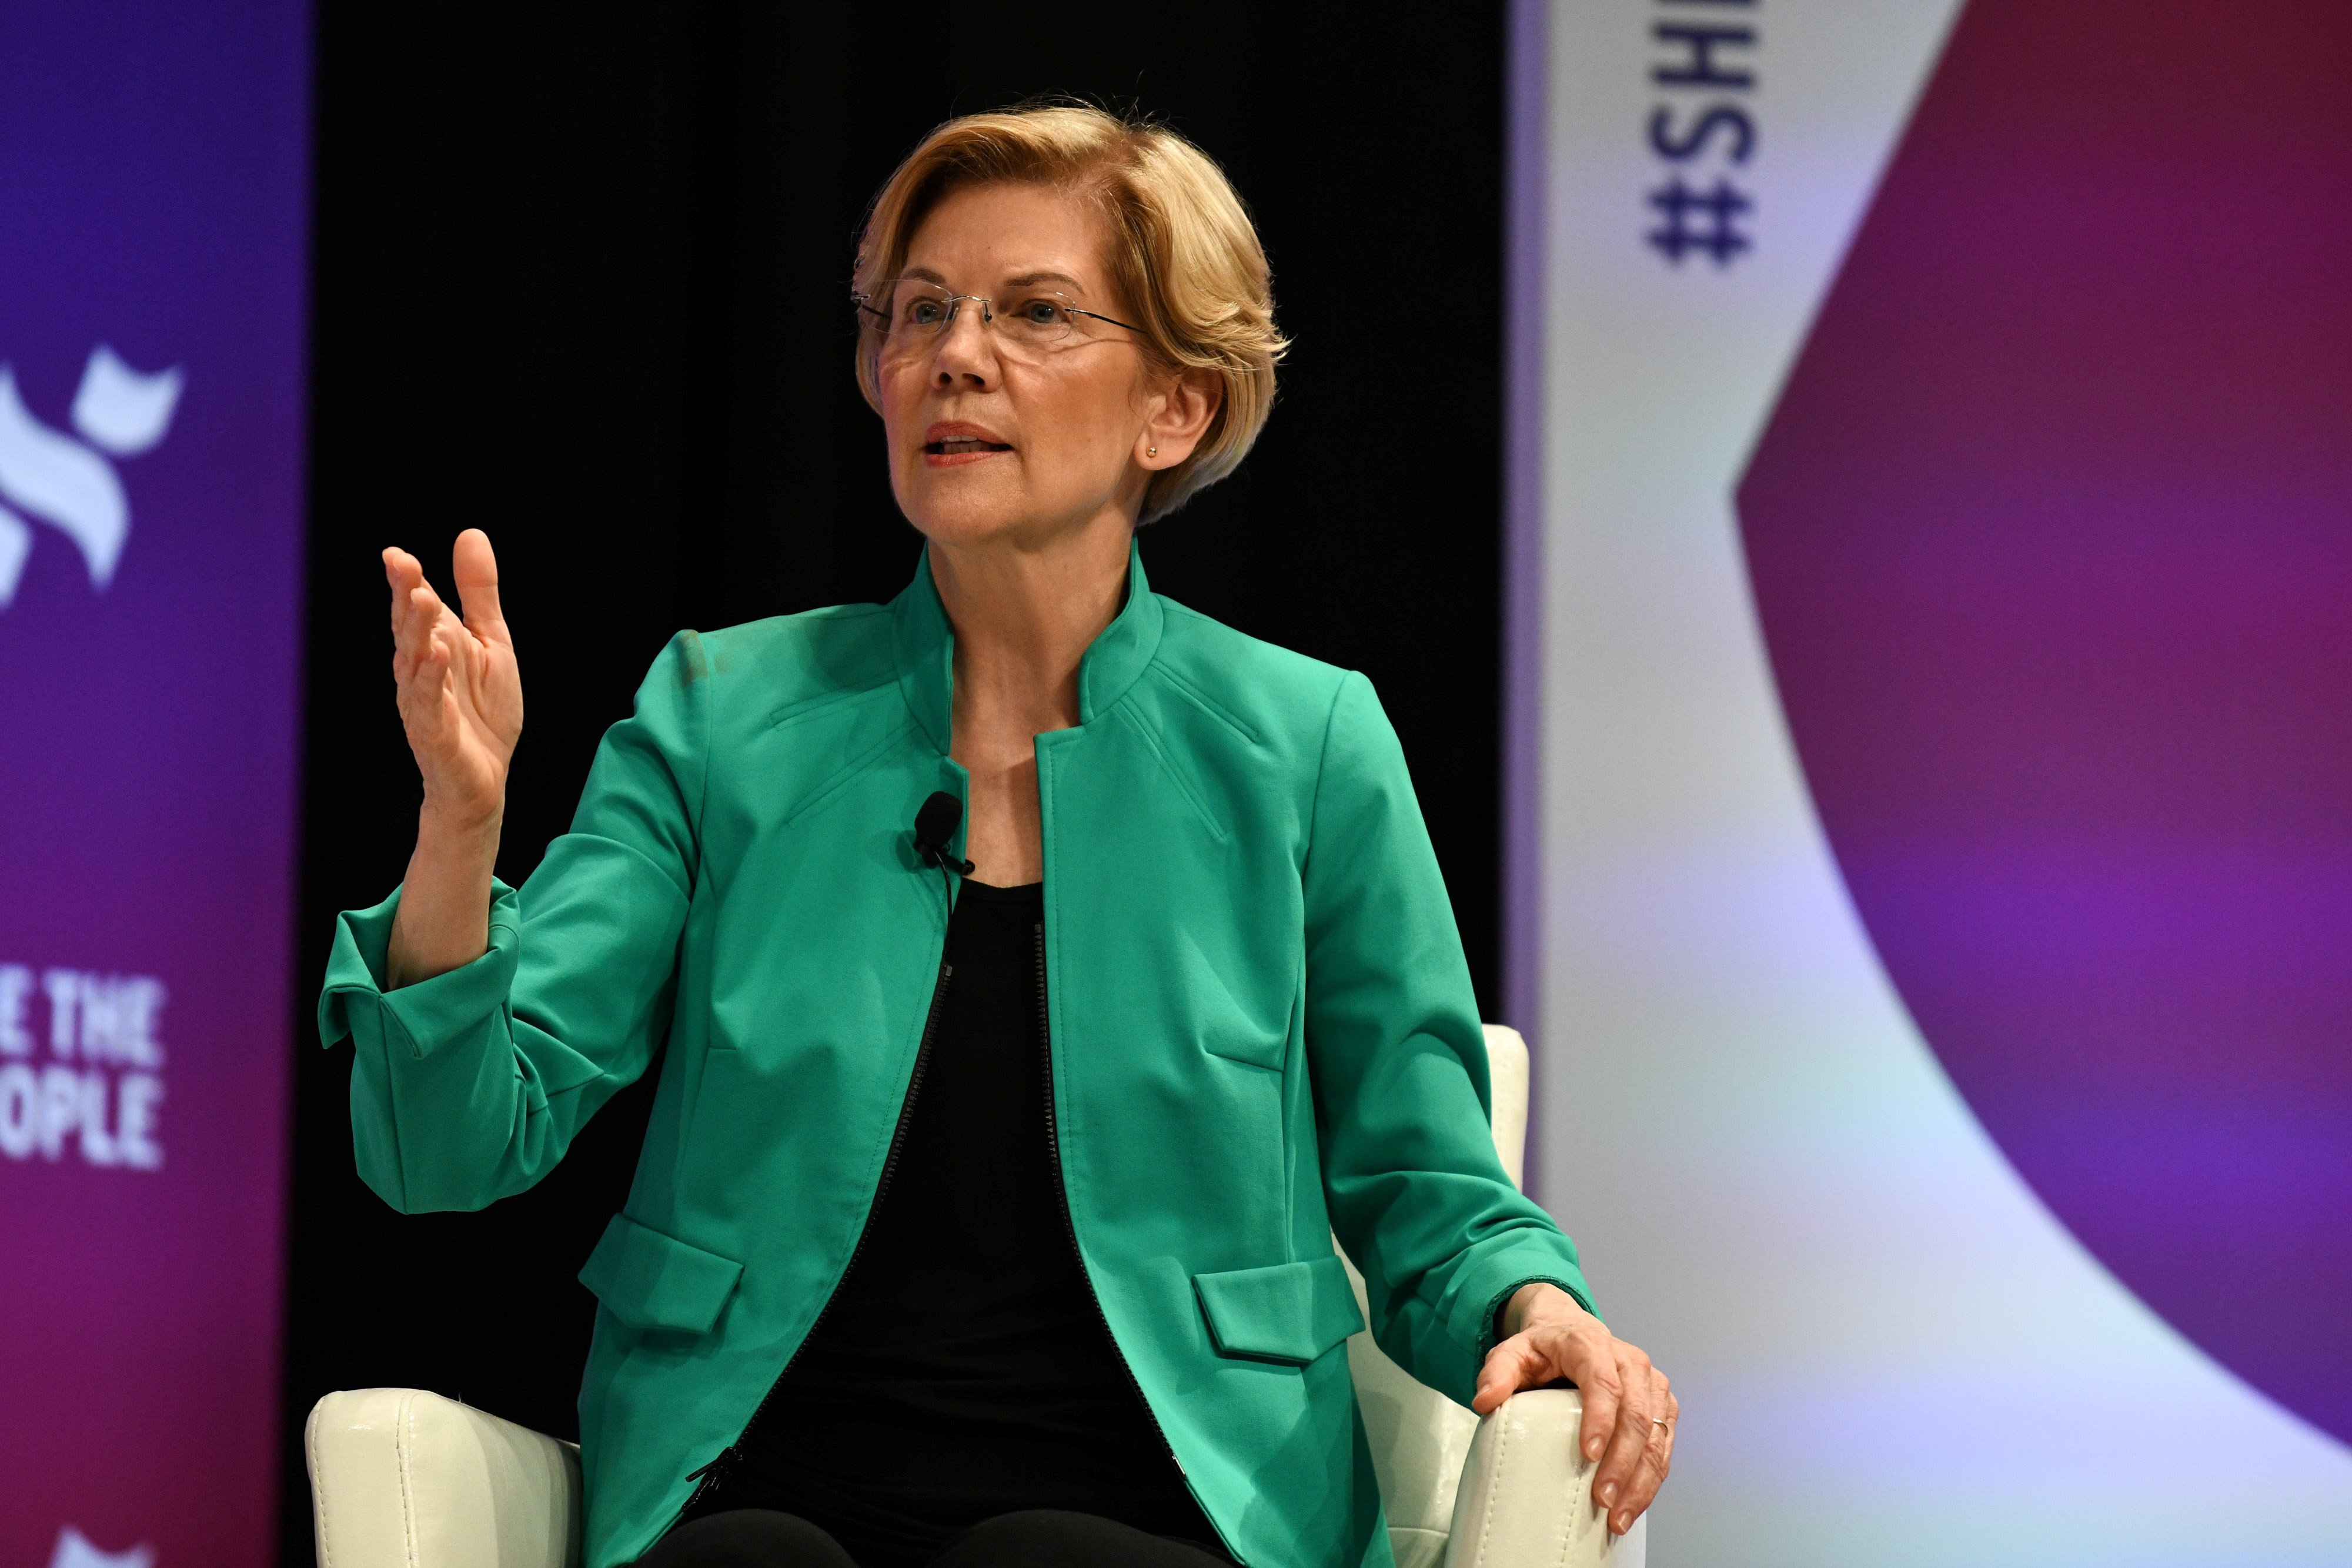 2020 Democratic presidential candidate Elizabeth Warren participates in the She the People Presidential Forum in Houston